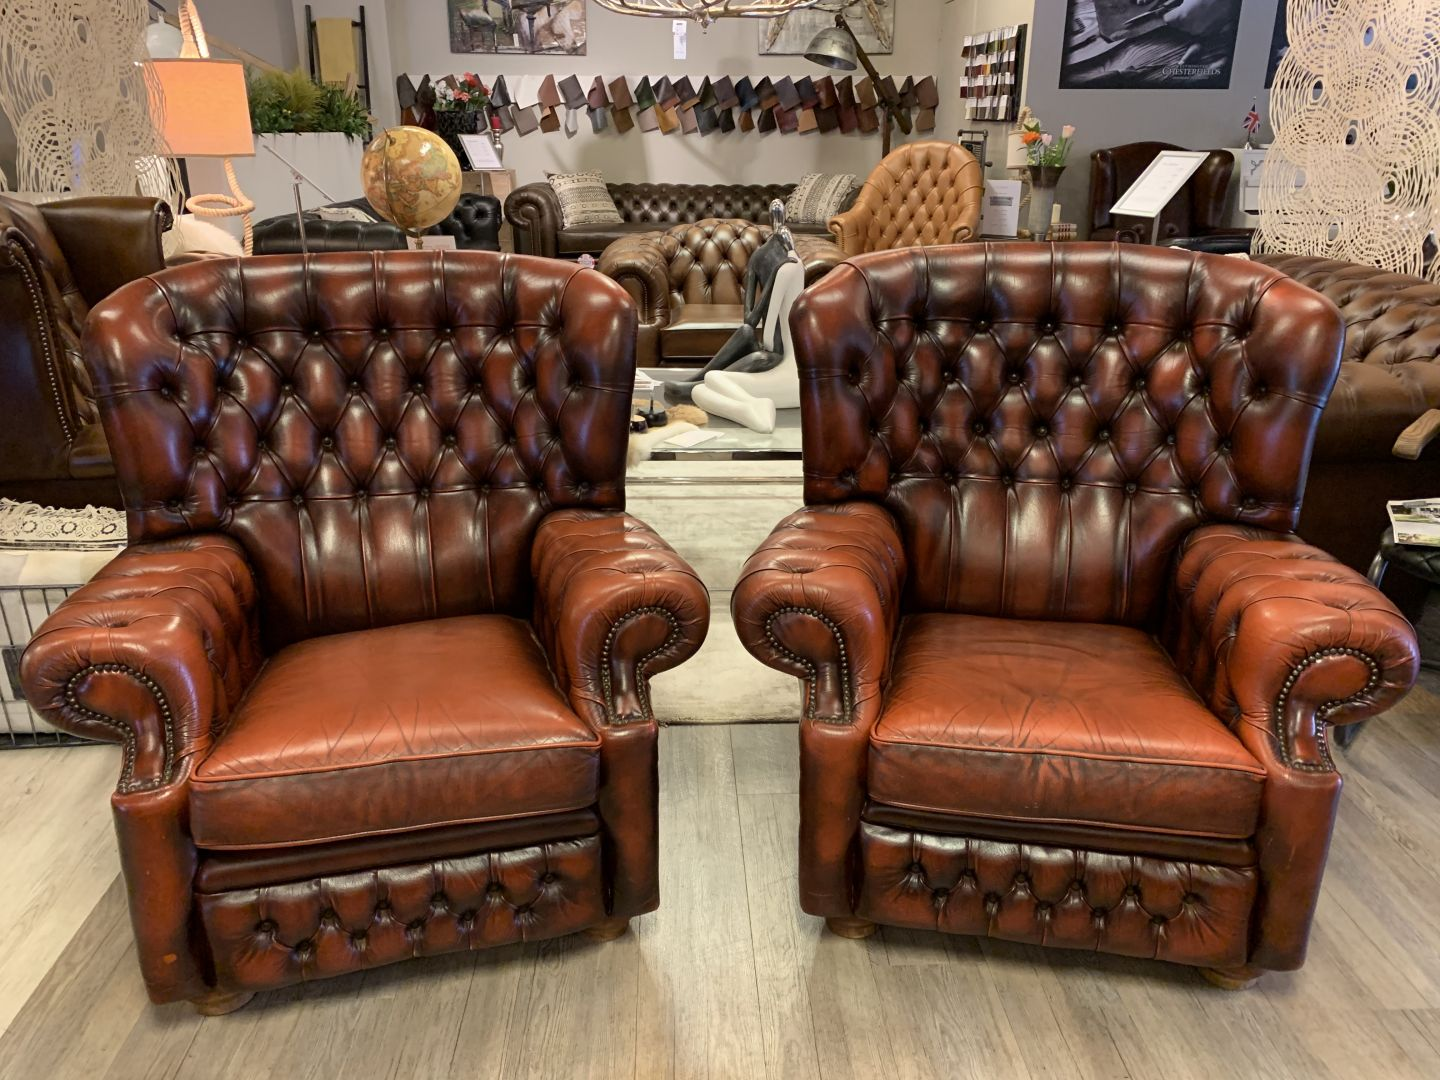 Chesterfield Fauteuil Oxblood.2 X Engelse Springvale Chesterfield Fauteuils Oxblood Rood